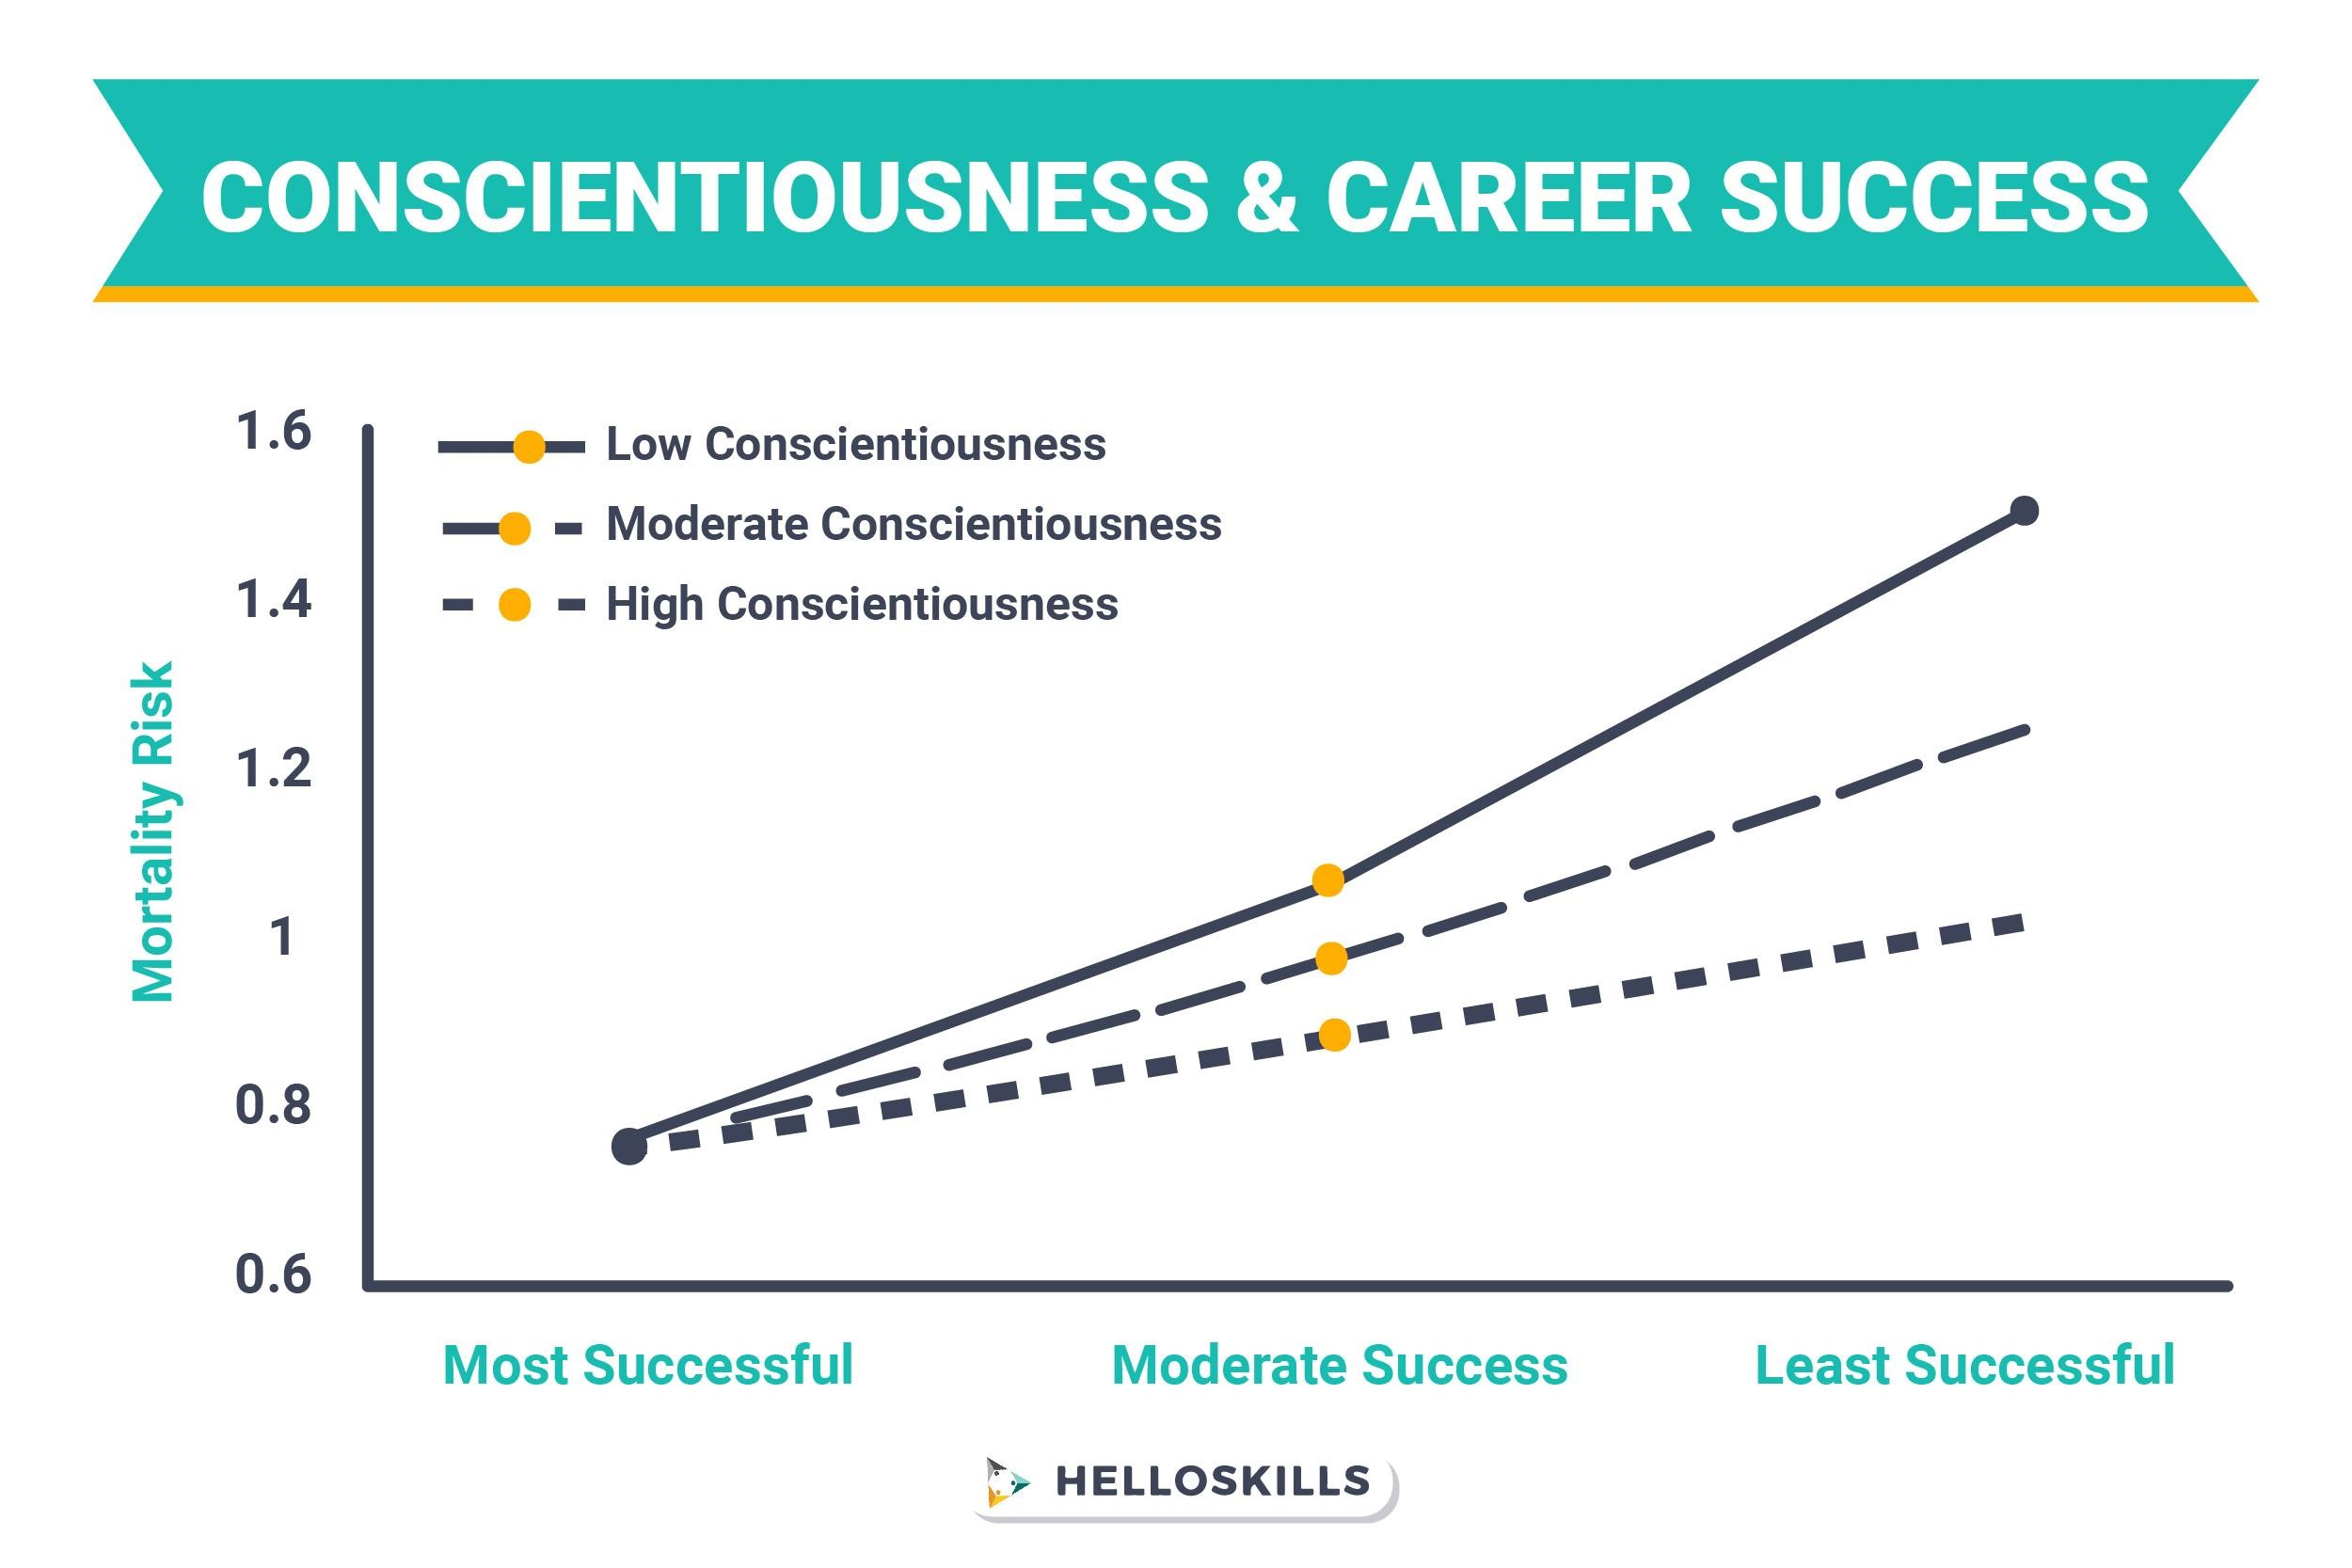 conscientiousness and career